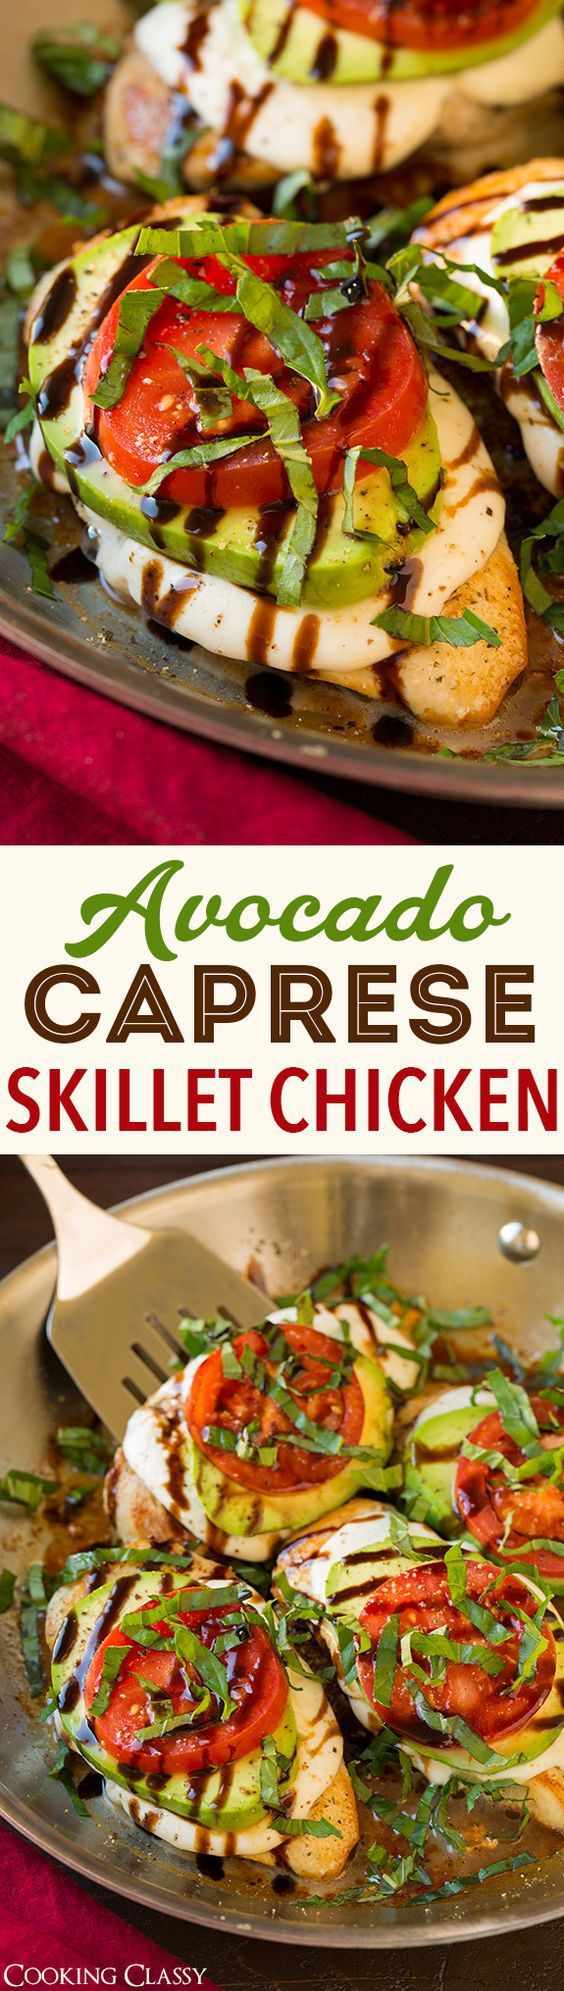 Chicken Recipes - Avocado Caprese Skillet Chicken Recipe via Cooking Classy - This is one of our all time chicken dinner favorites